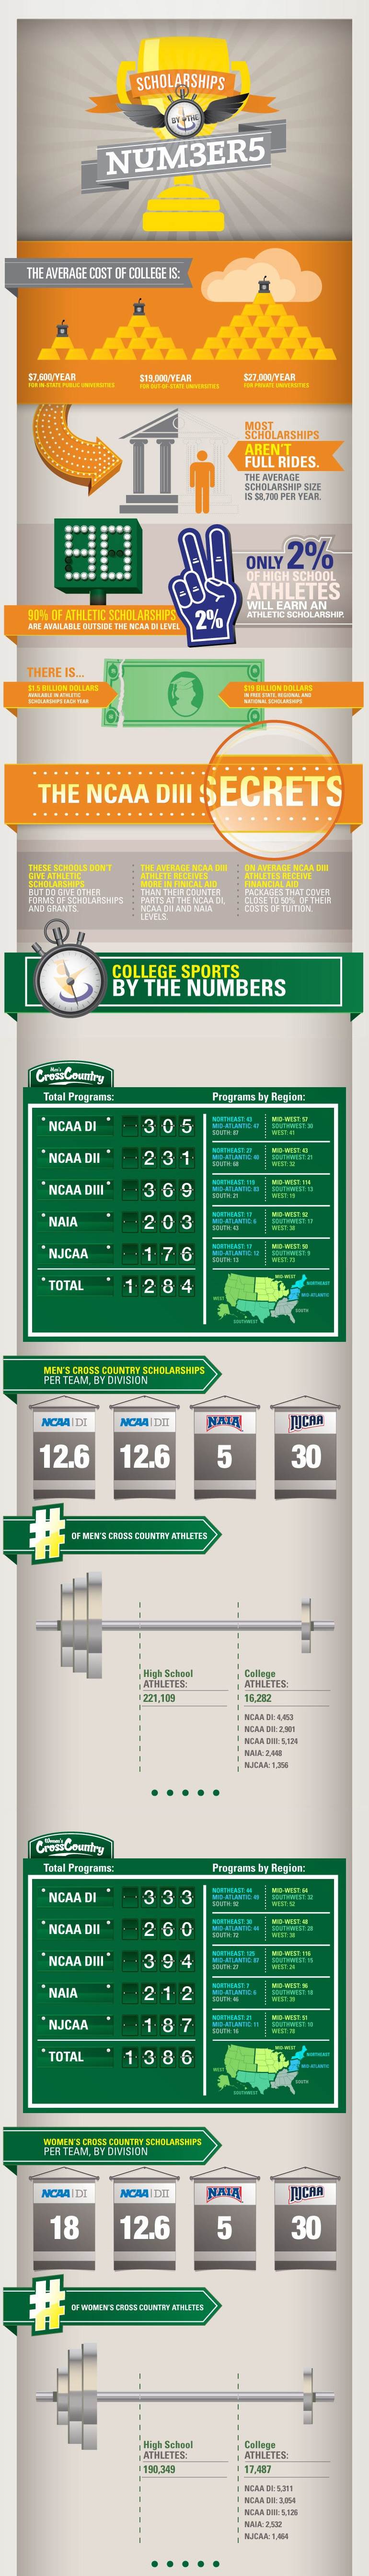 Cross Country by the Numbers